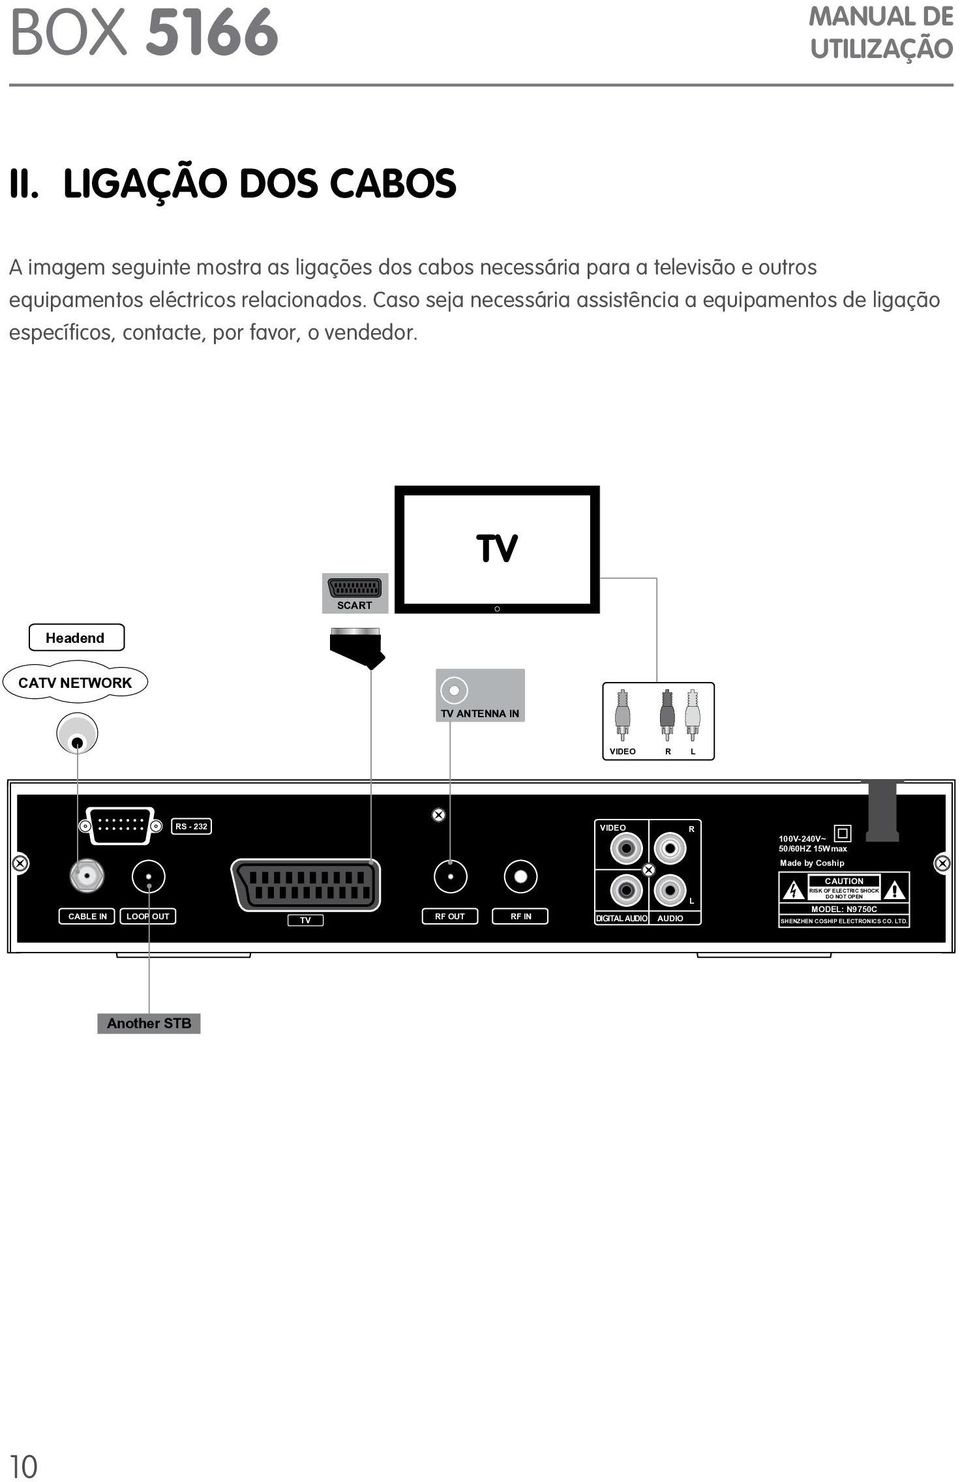 Prefácio TV SCART Headend CATV NETWORK TV ANTENNA IN VIDEO R L RS - 232 VIDEO R 100V-240V~ 50/60HZ 15Wmax Made by Coship CAUTION CABLE